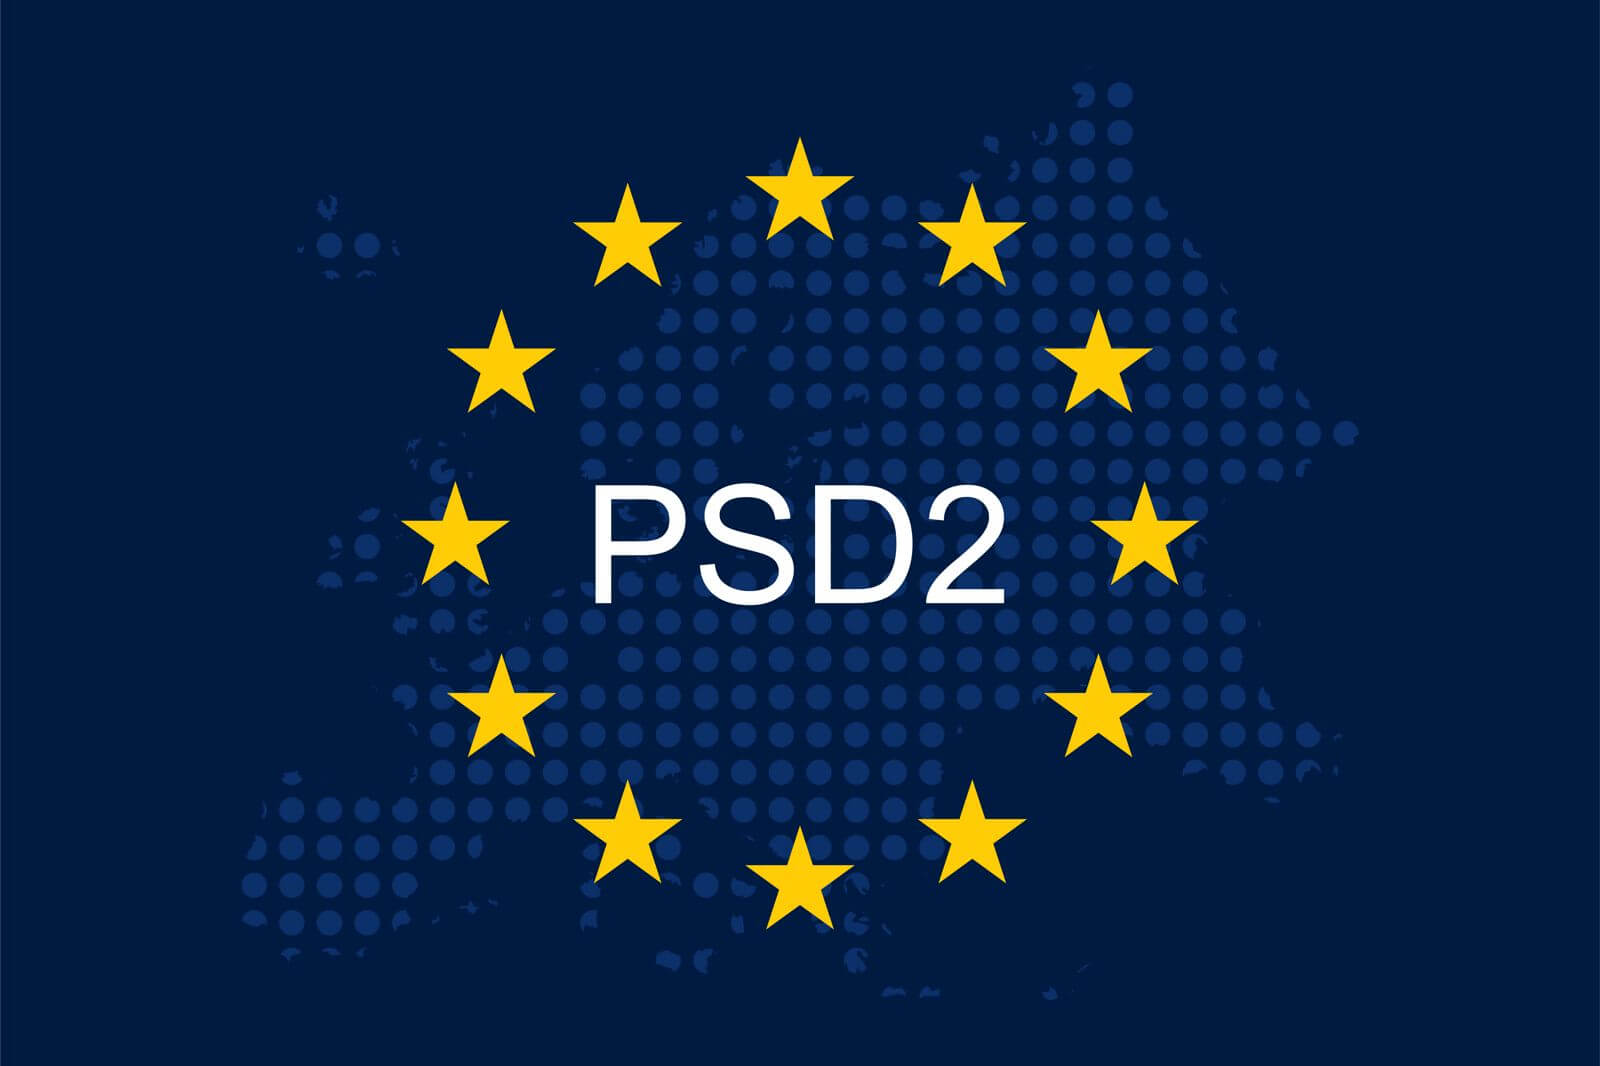 PSD2 Payment Services Directive 2